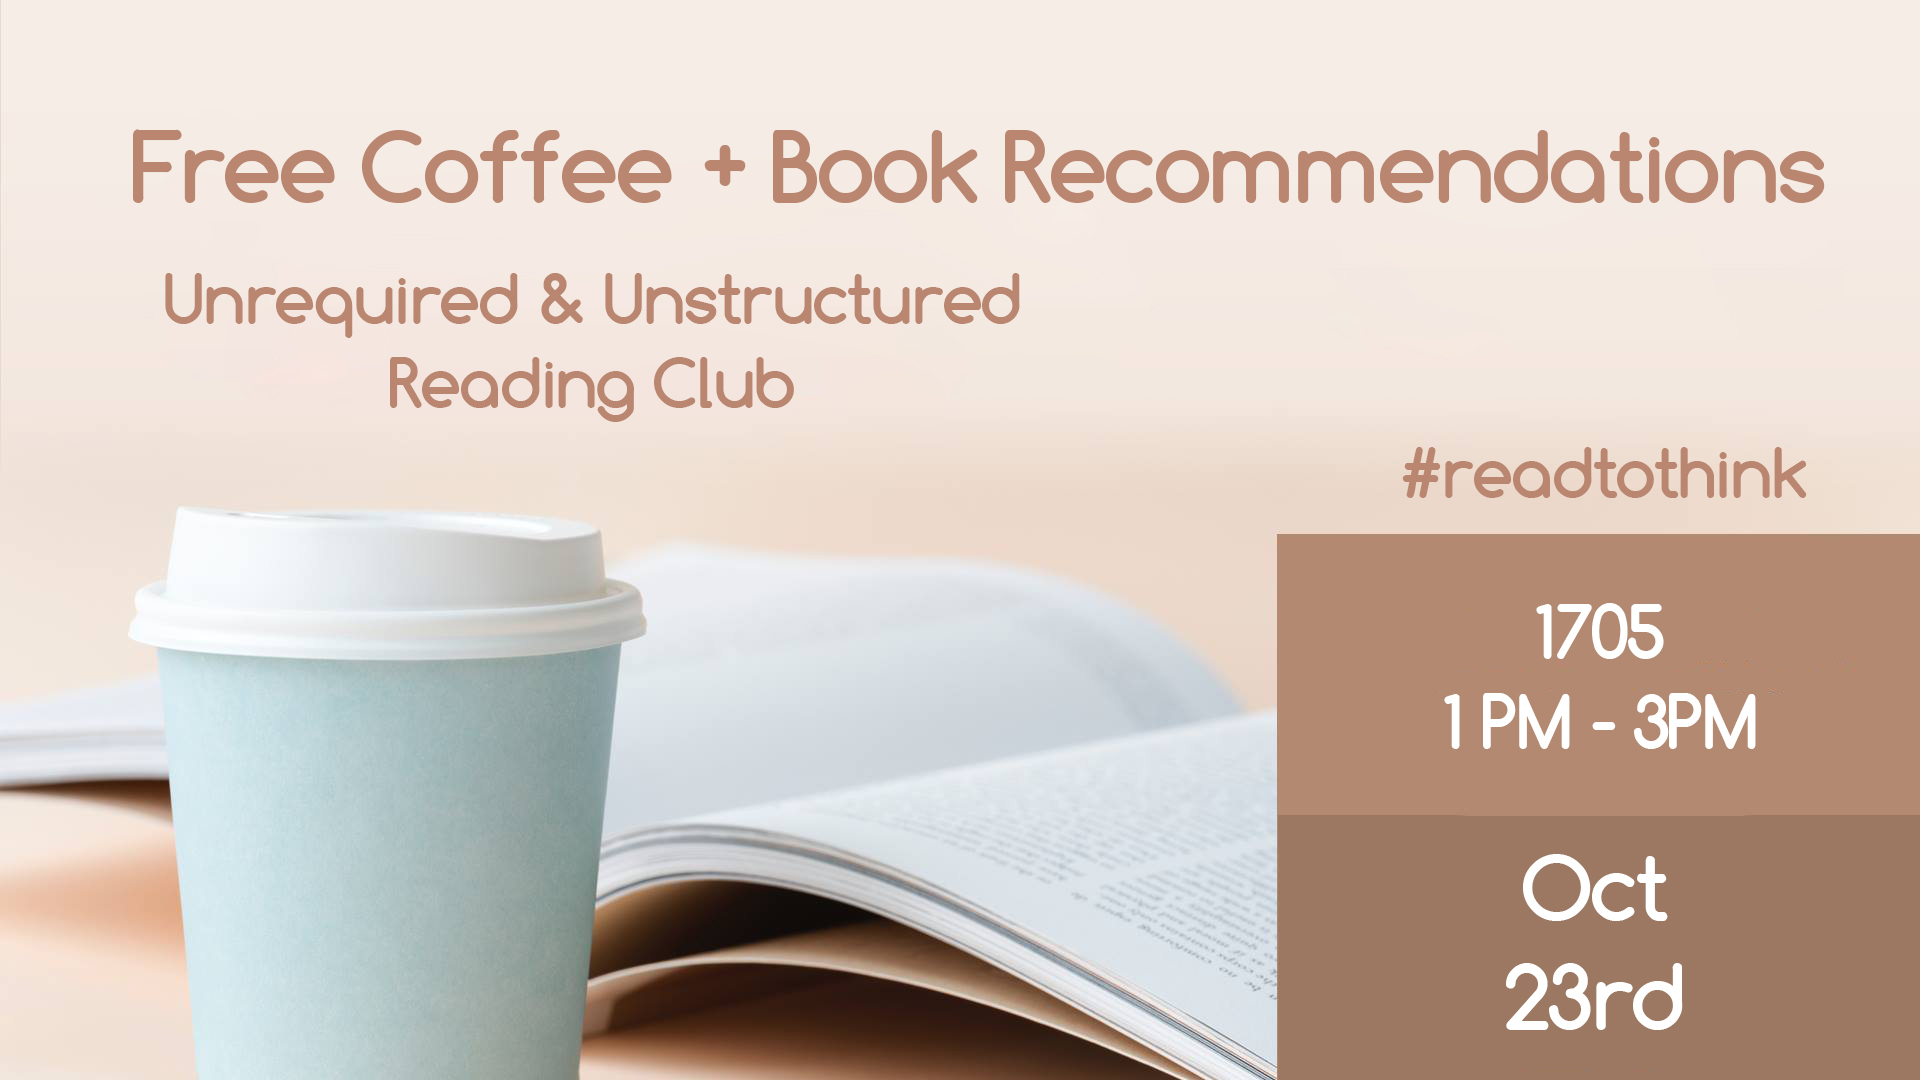 Free Coffee and Book Recommends 1705 Wednesday, October 23, 2019 at 1 PM – 3 PM